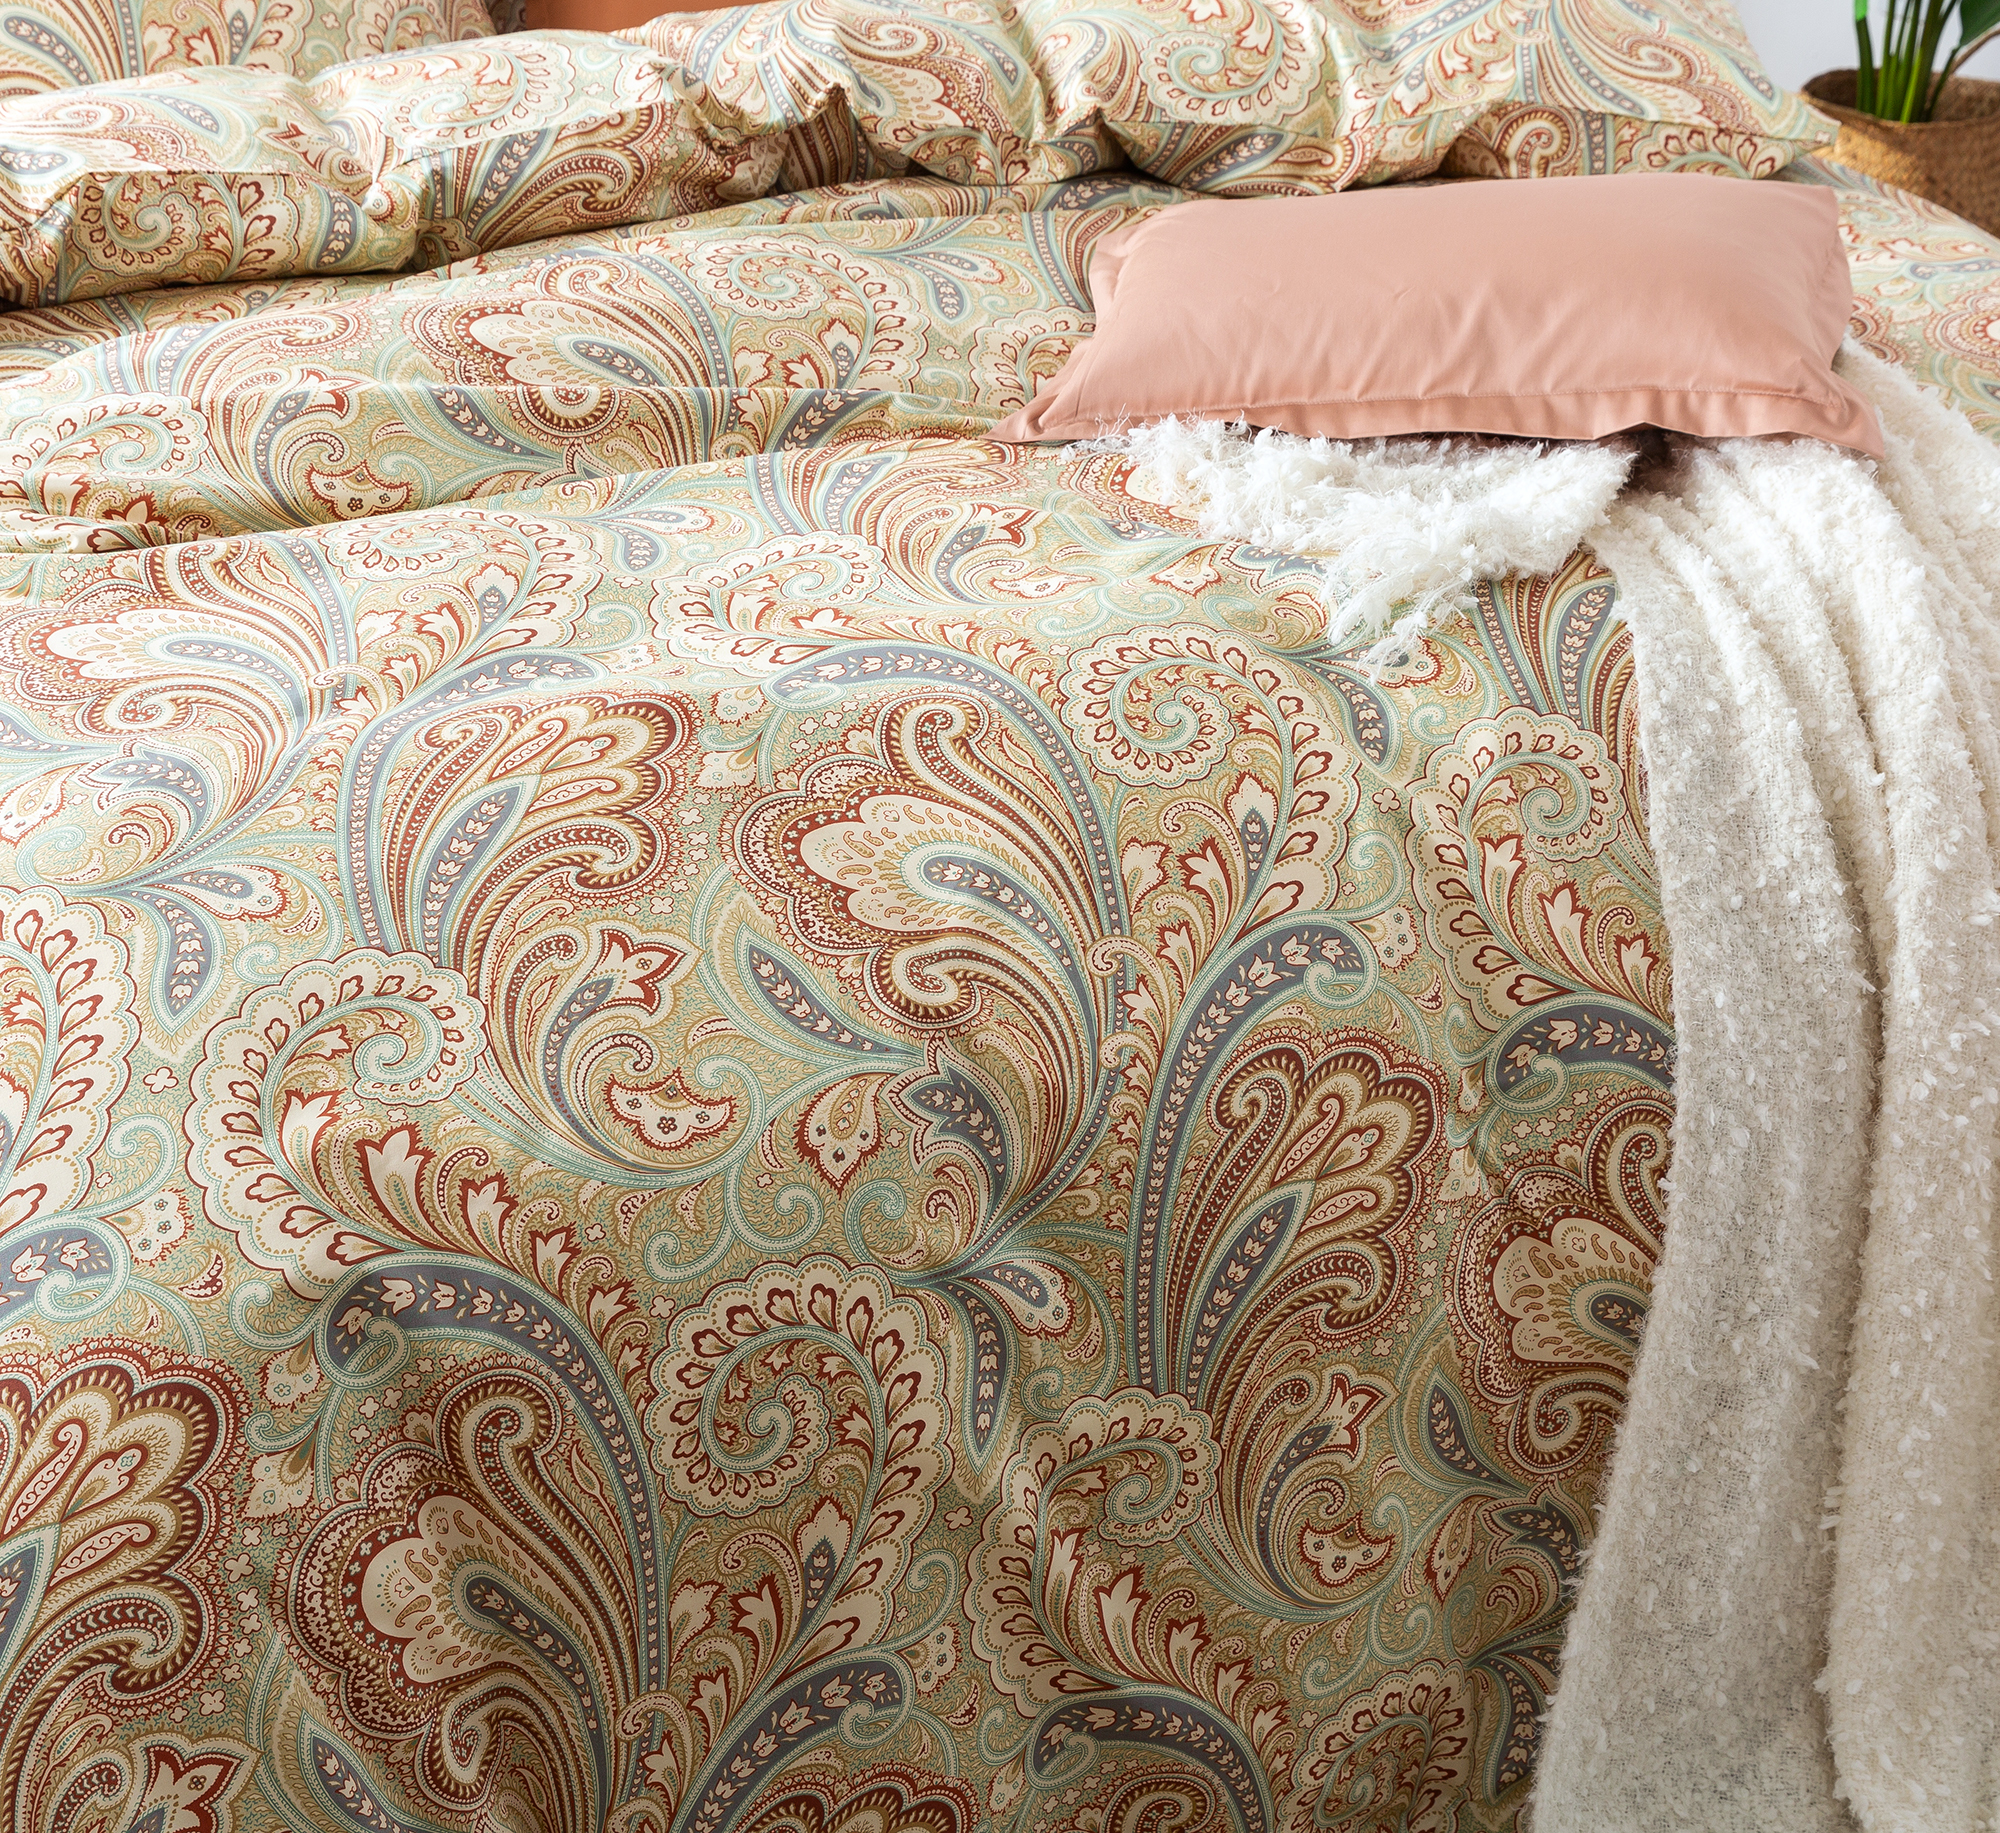 Boho Paisley Print Luxury Duvet Quilt Cover And Shams 3pc Bedding Set Bohemian Damask Medallion Rust Eikei